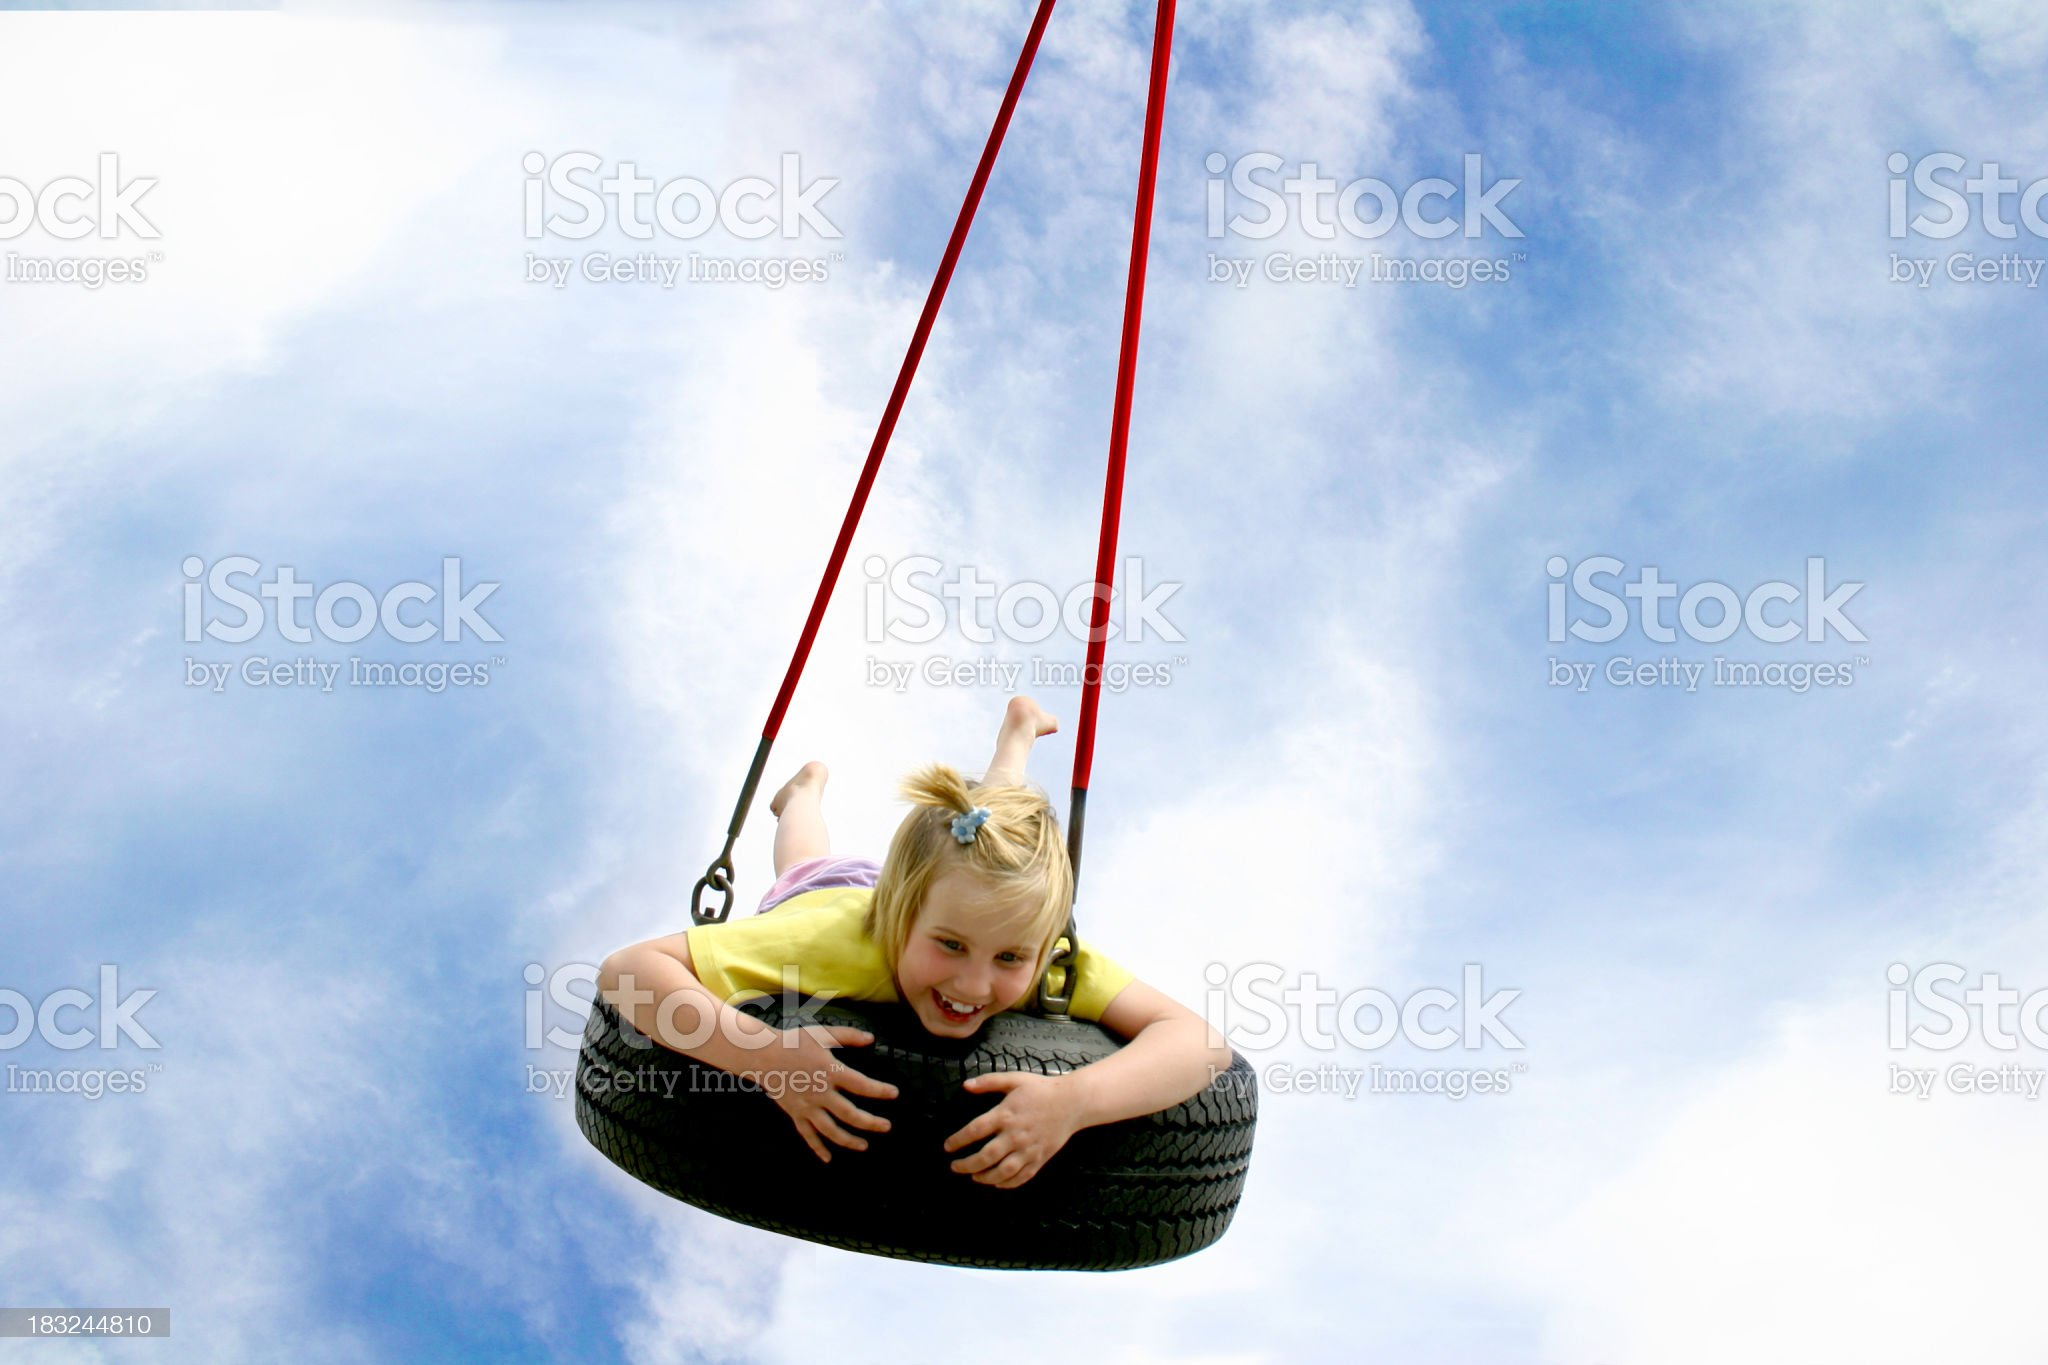 Summer swing II royalty-free stock photo